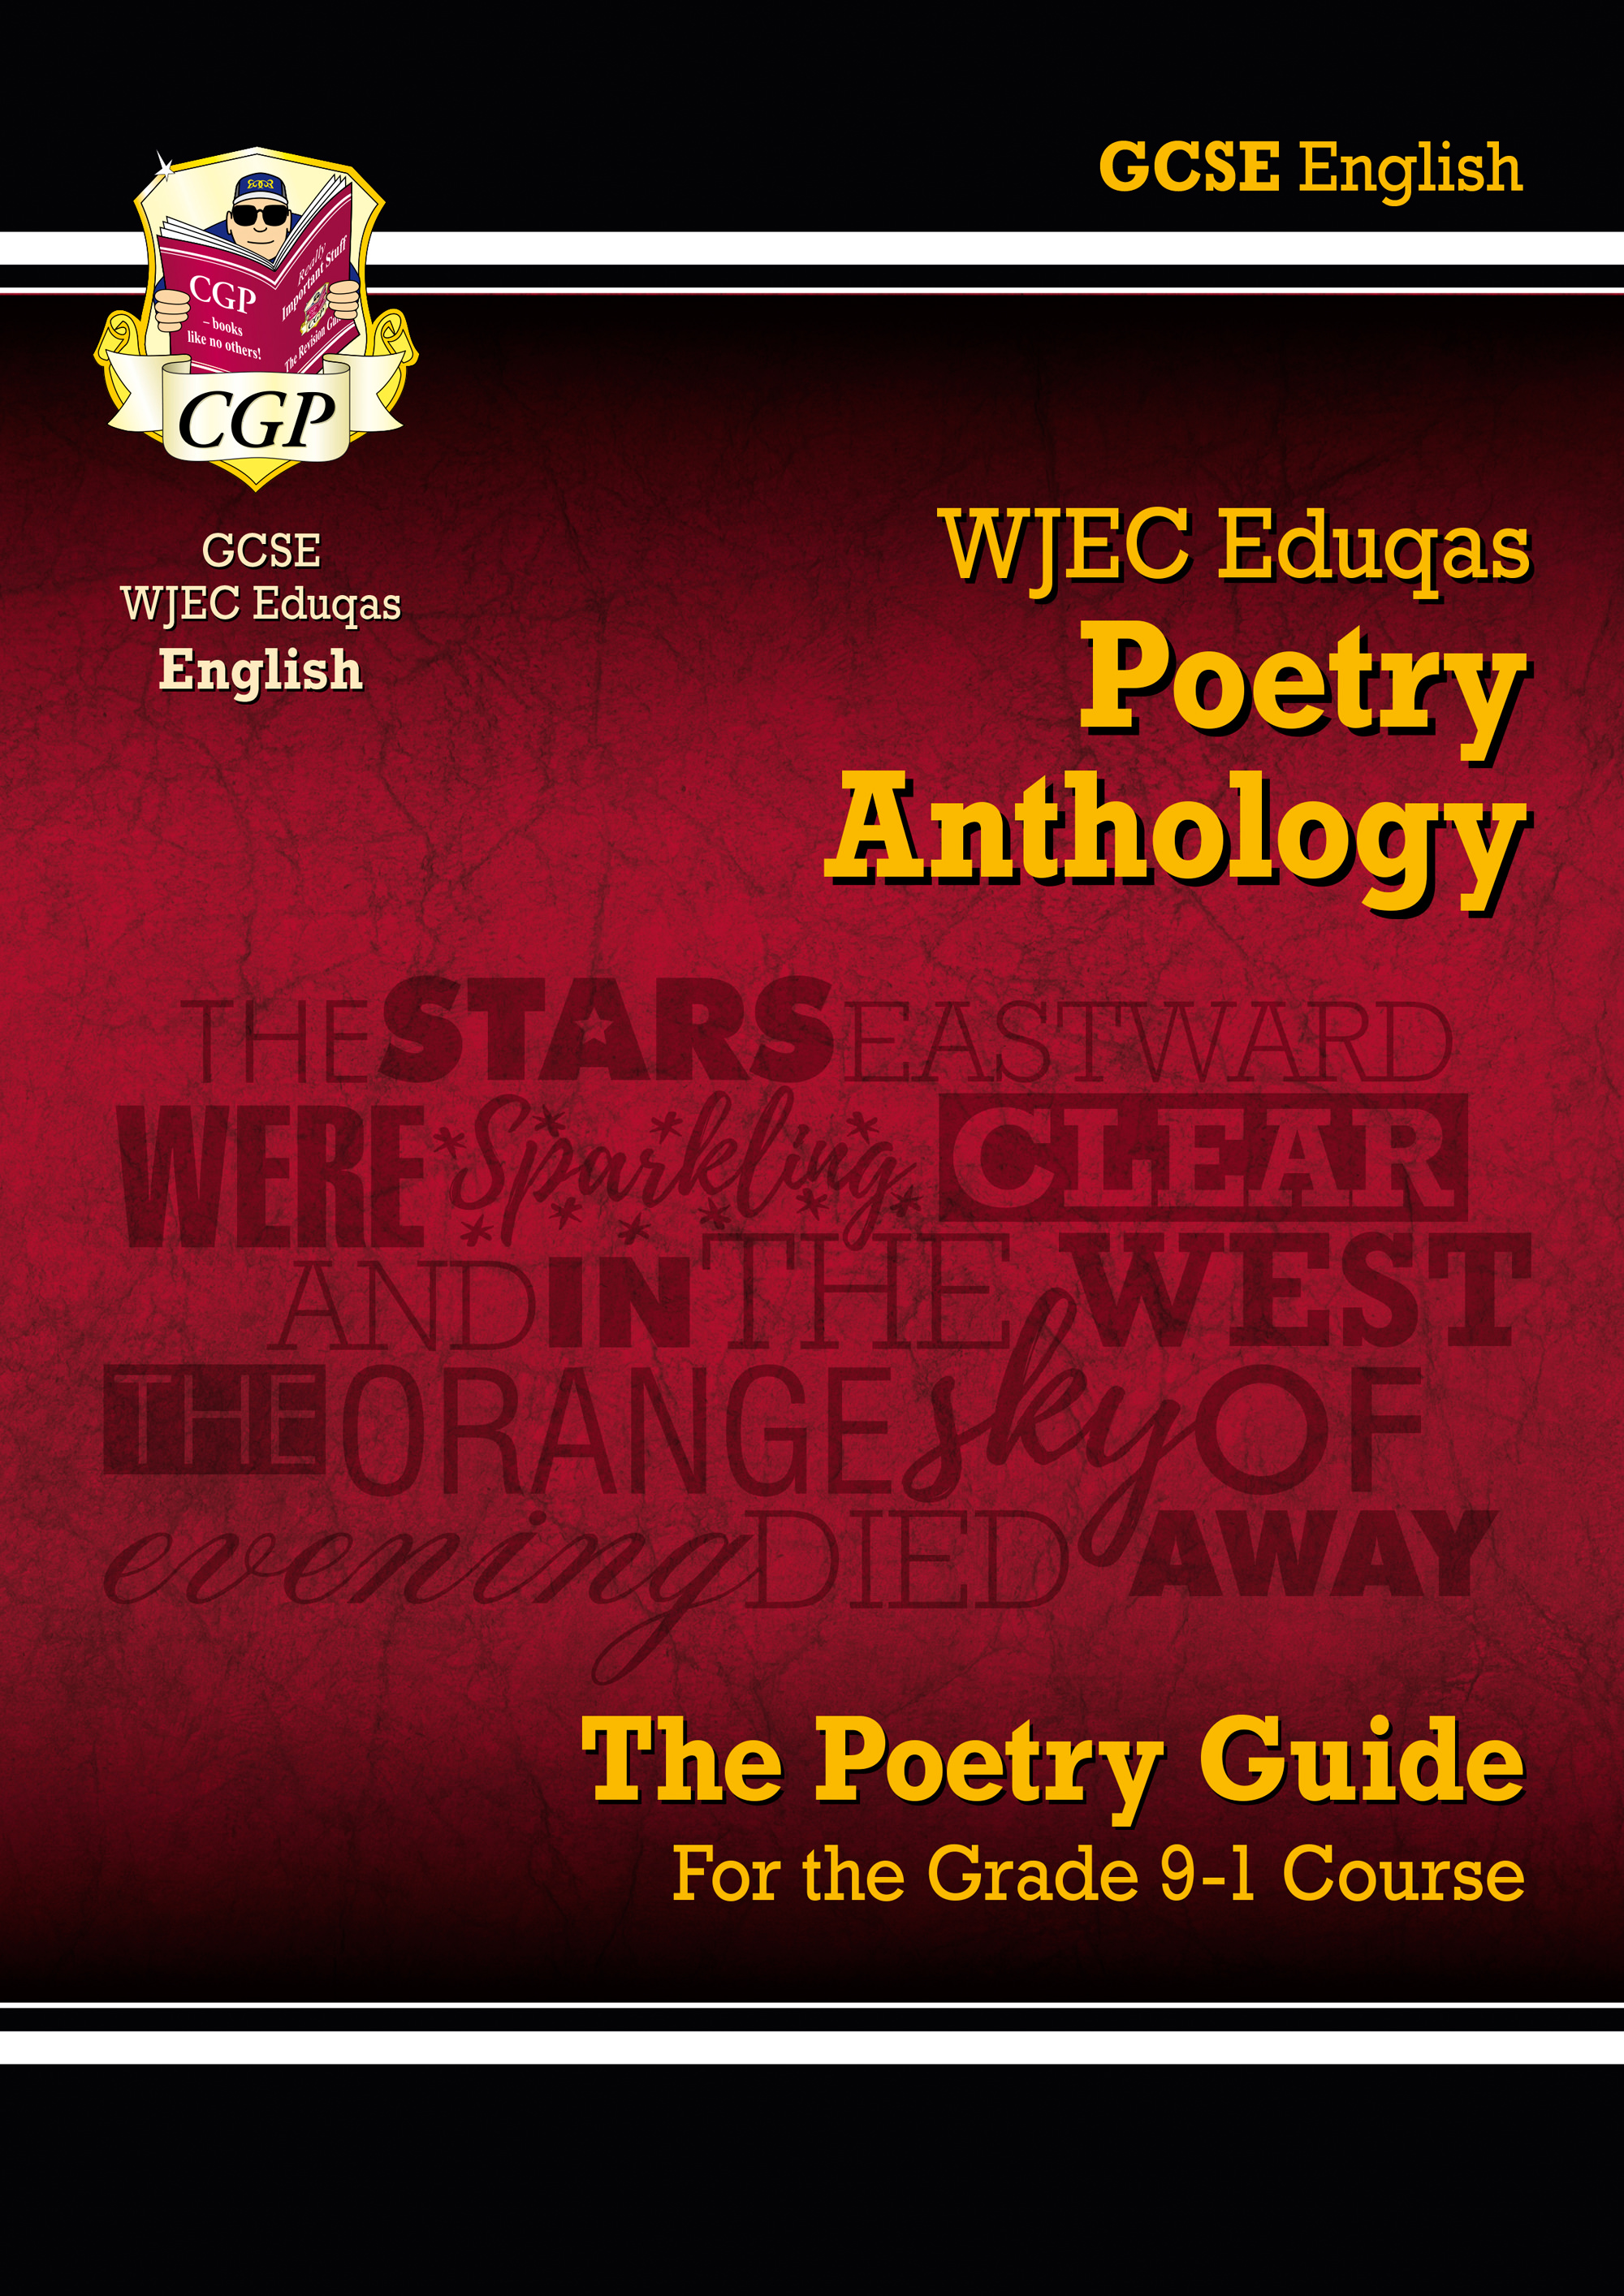 AWHR41DK - New GCSE English Literature WJEC Eduqas Anthology Poetry Guide - for the Grade 9-1 Course